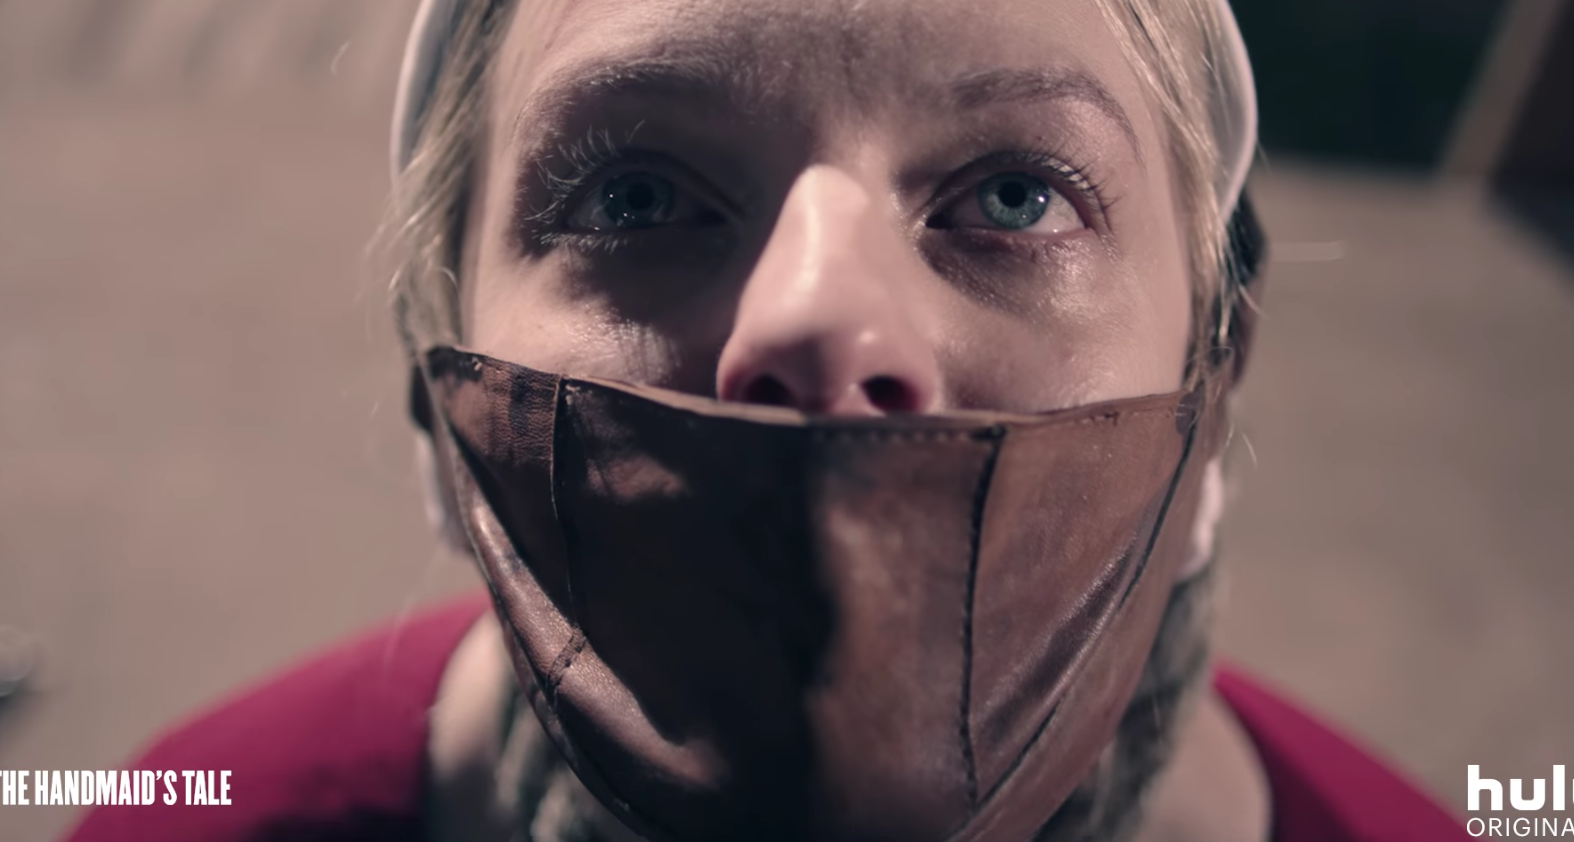 Elisabeth Moss, The Handmaid's Tale (Hulu trailer screenshot, EH)